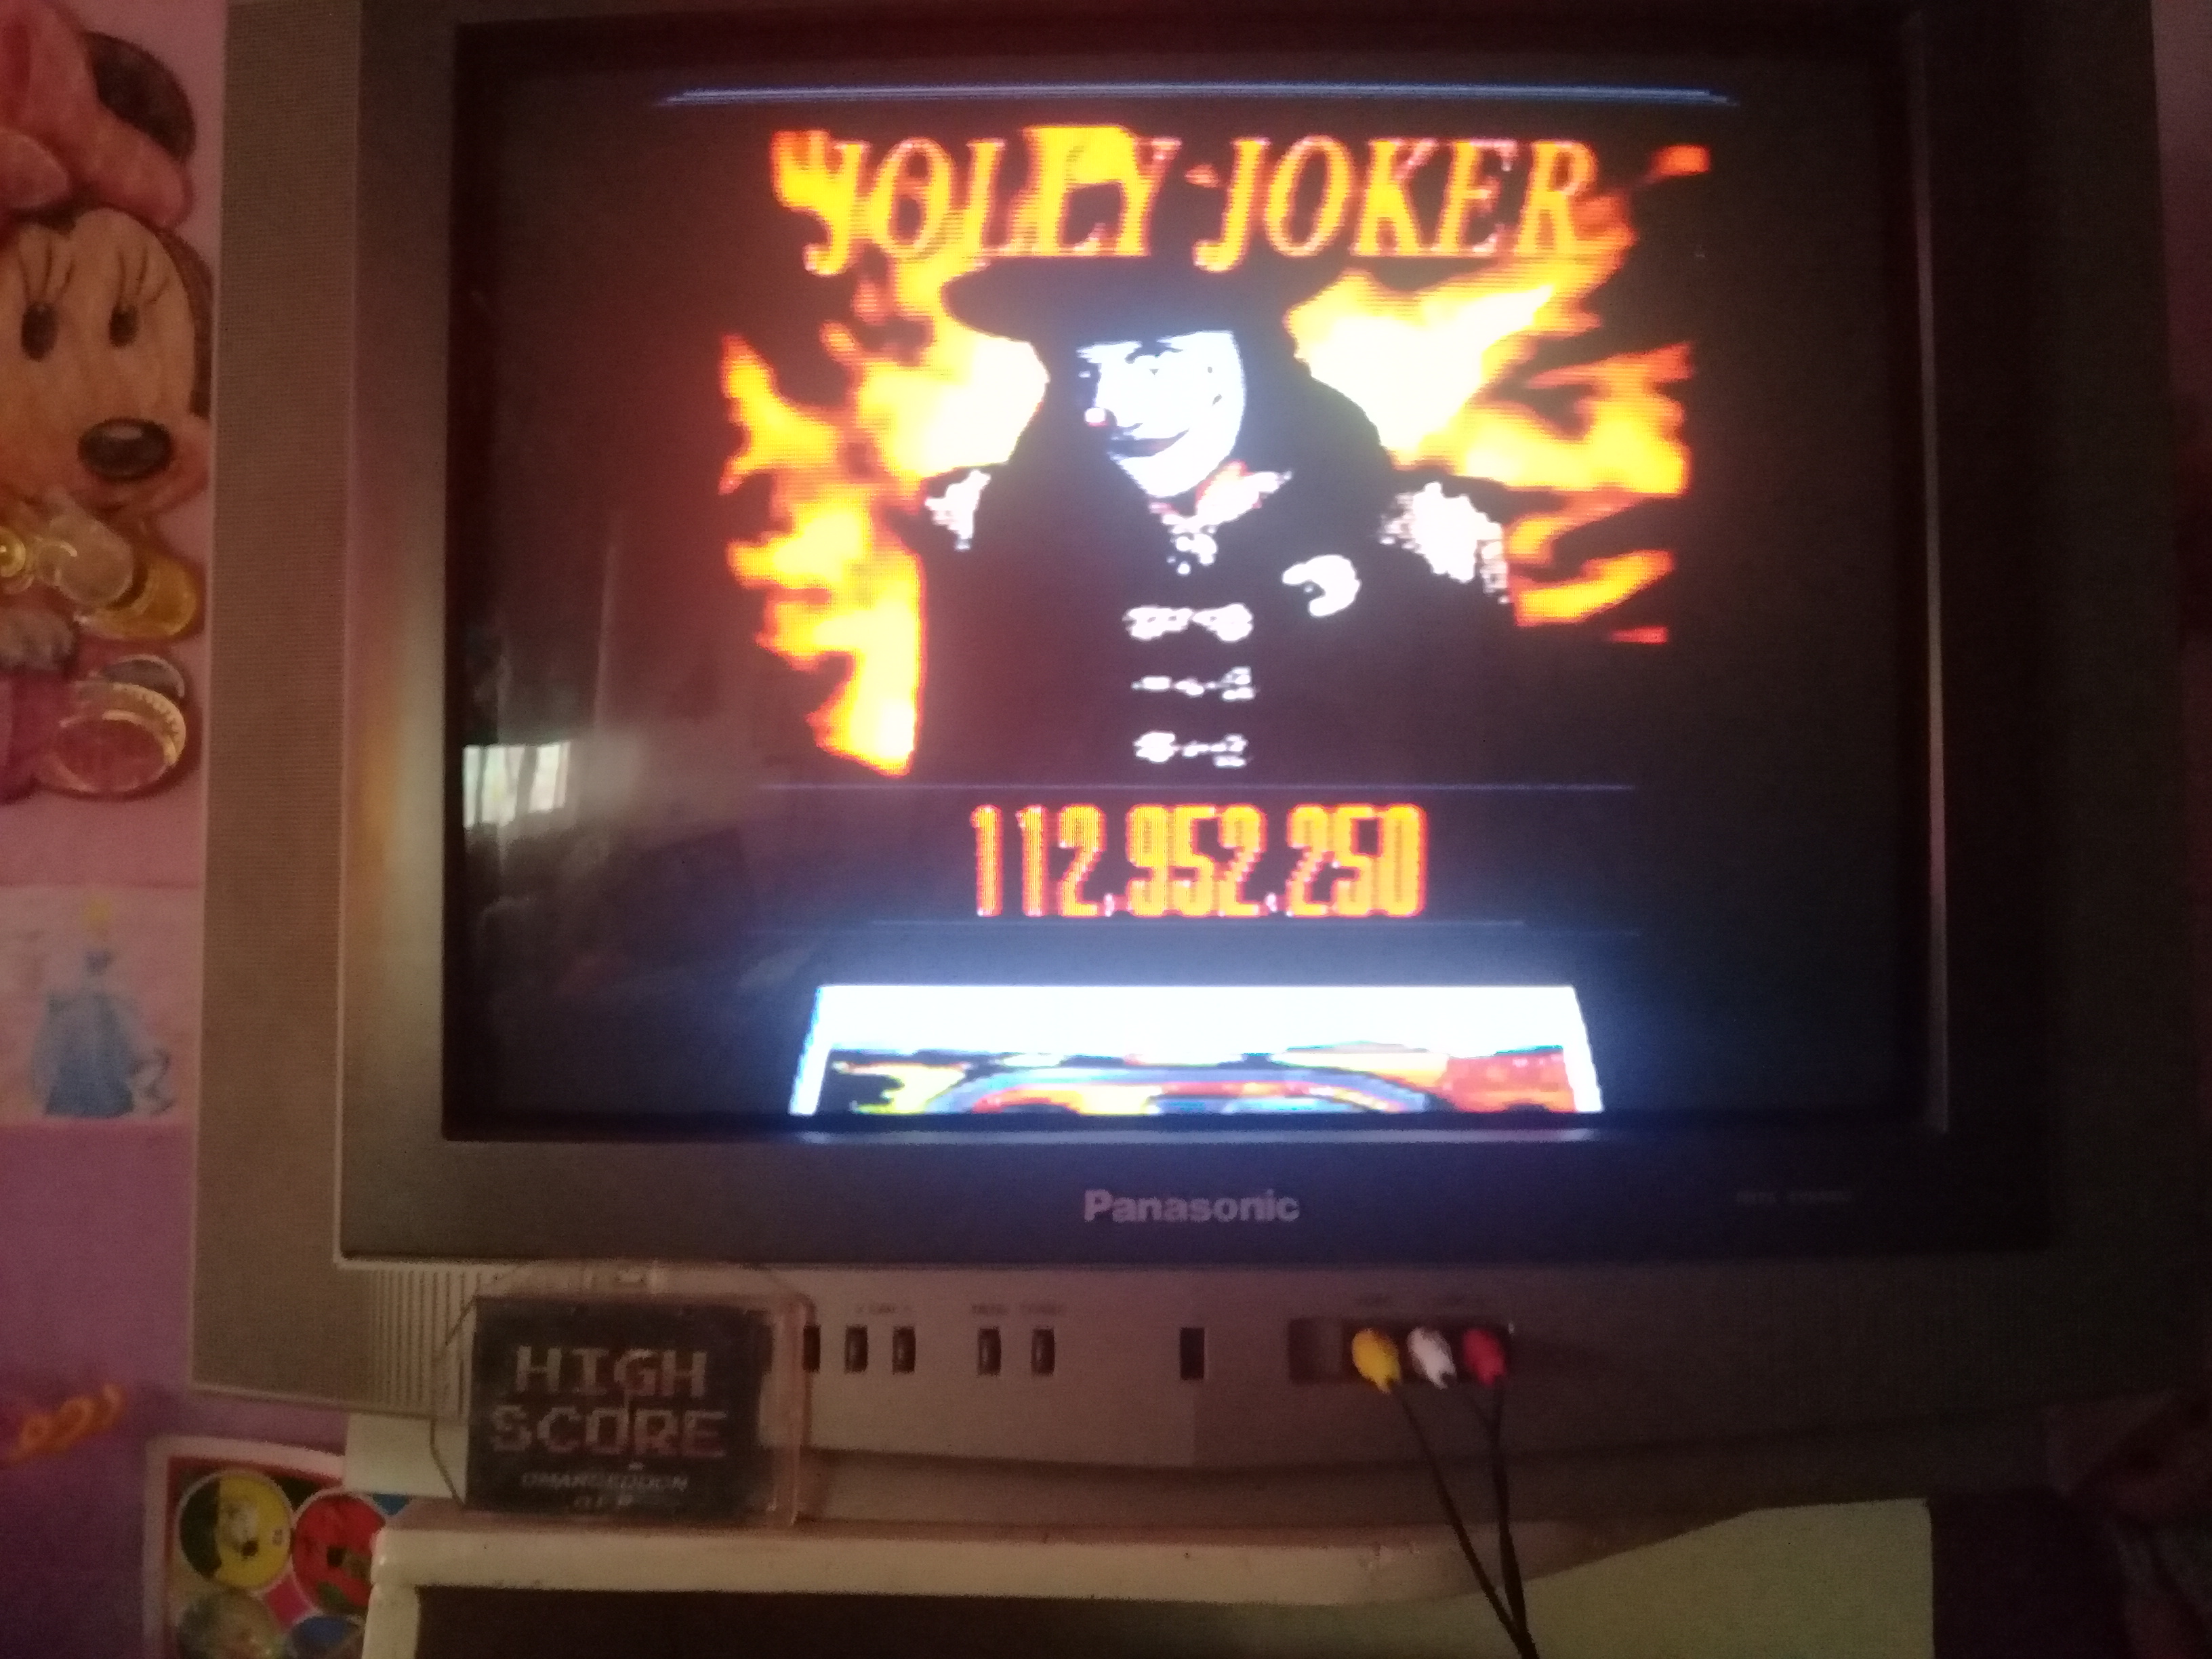 omargeddon: Super Pinball: Behind The Mask: Jolly Joker (SNES/Super Famicom) 112,952,250 points on 2019-07-07 18:22:02